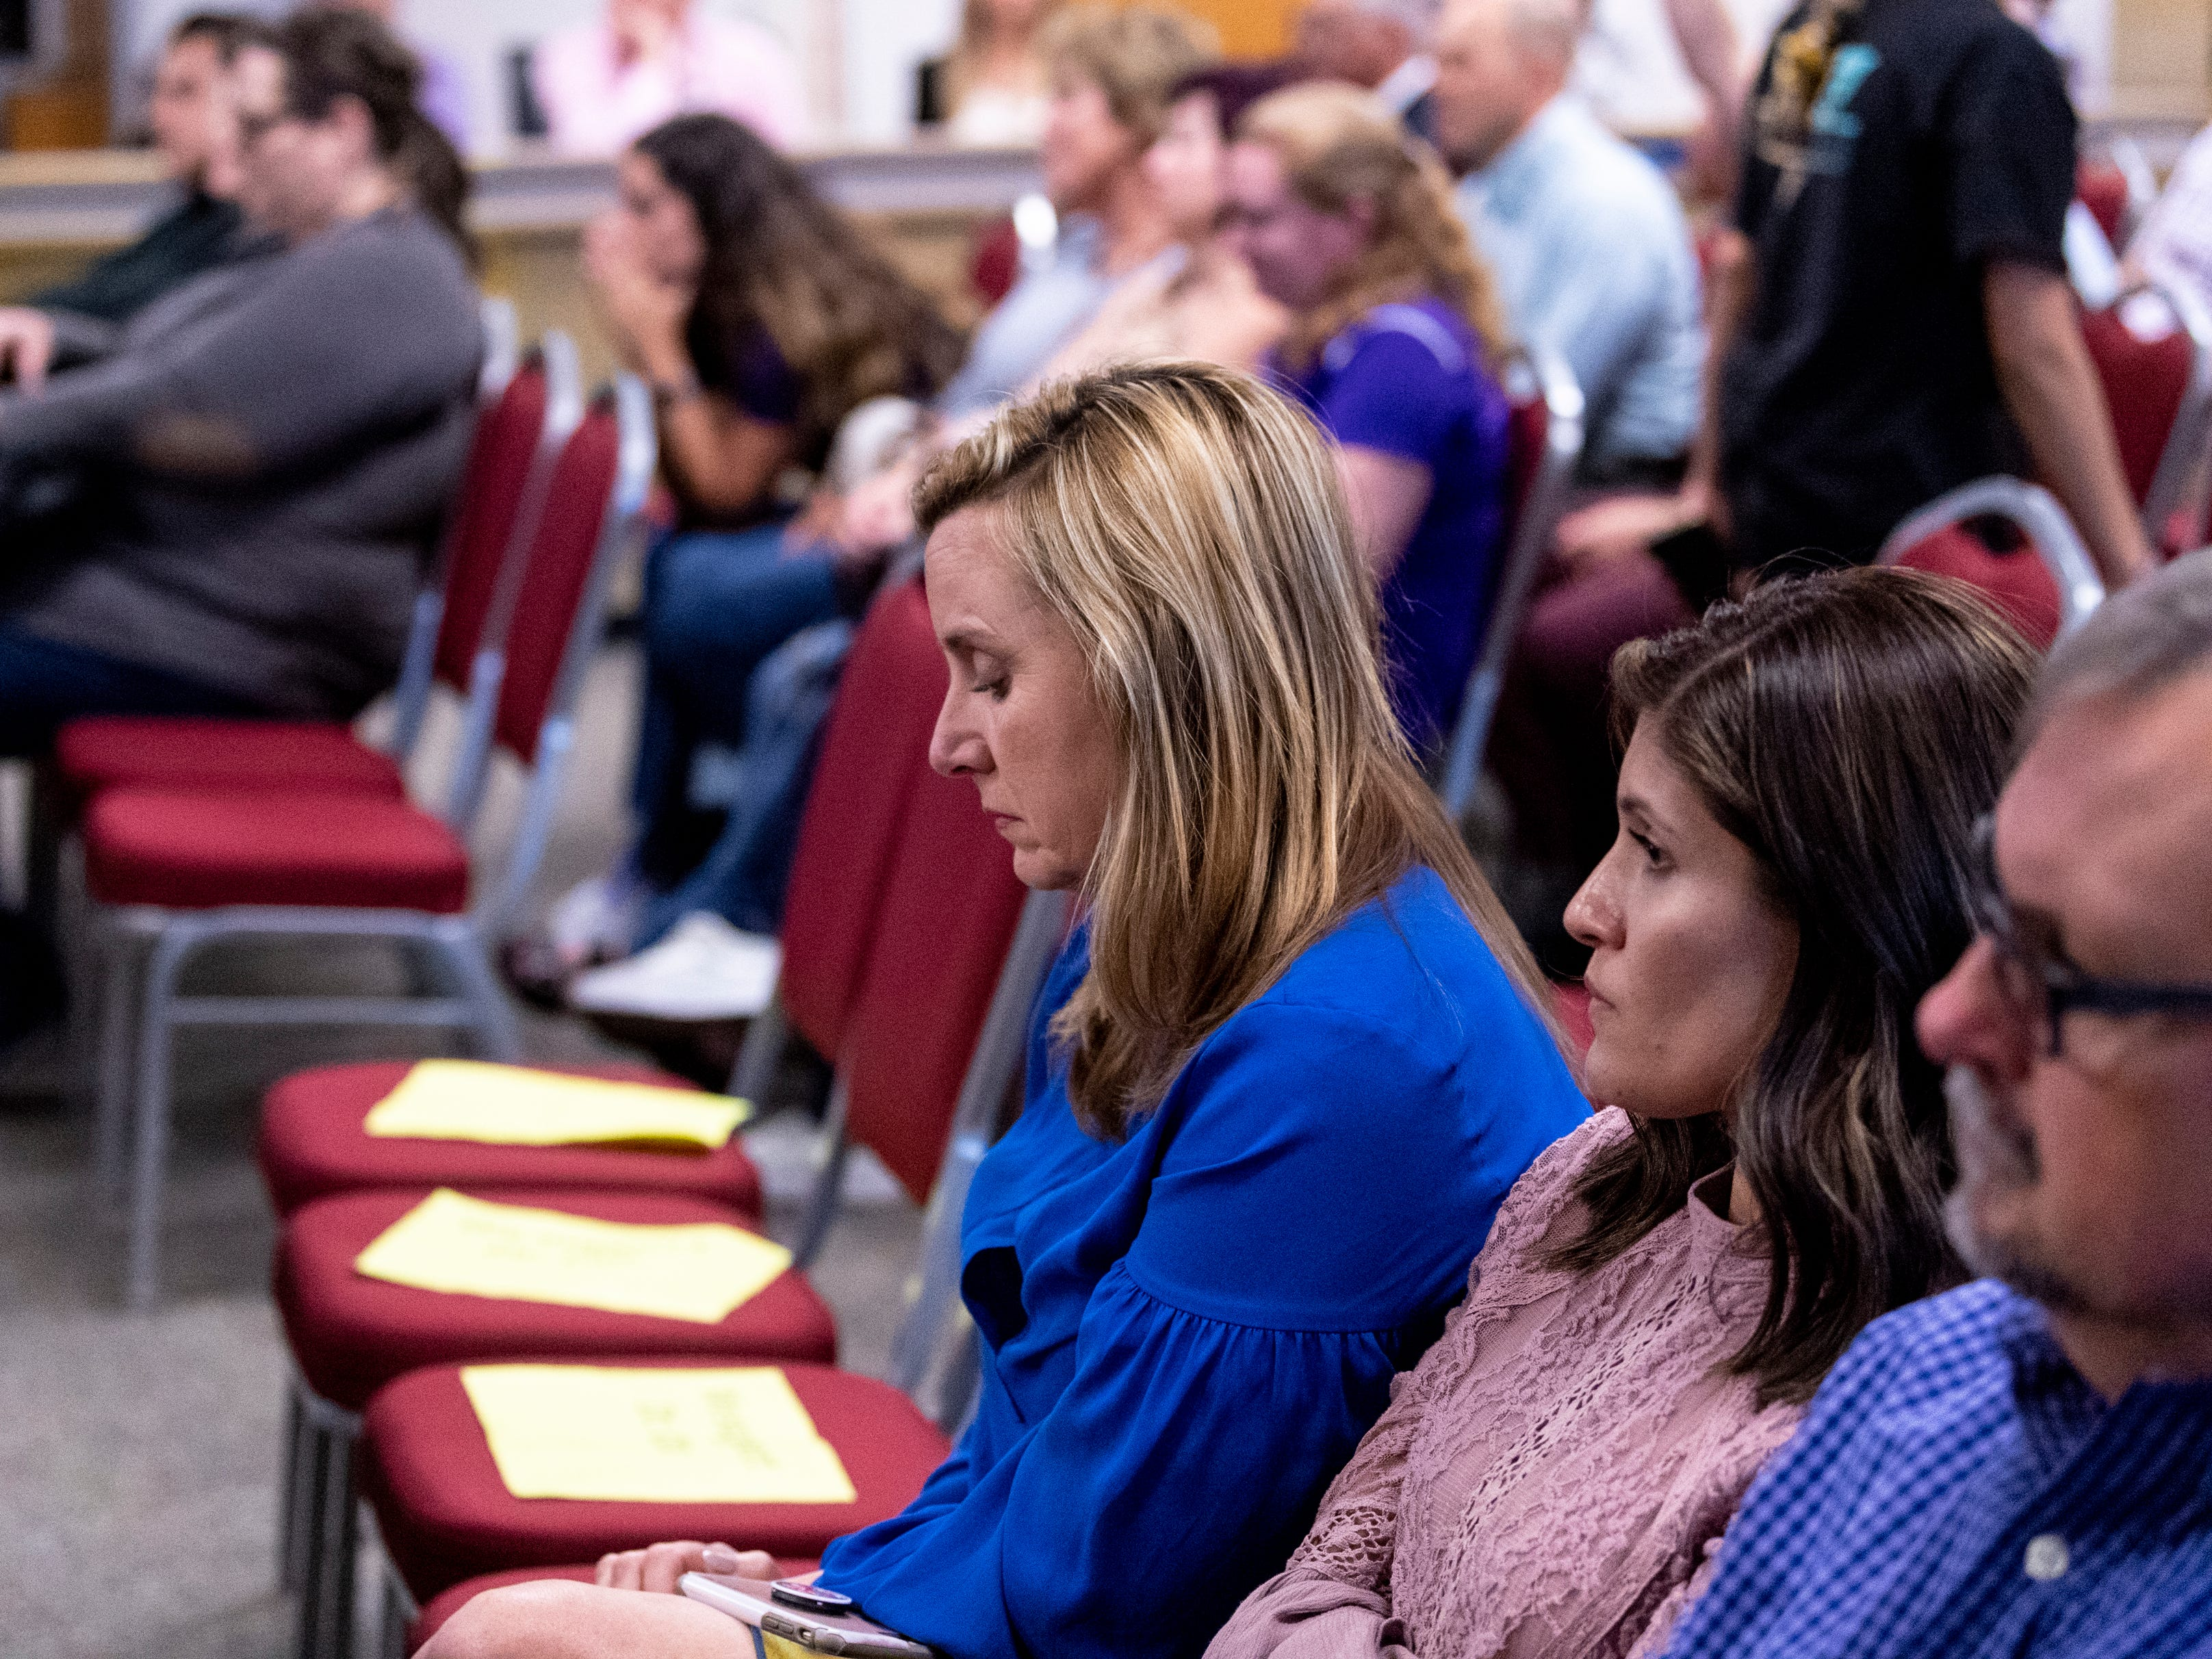 Supporters react to the announcement that the board had voted to accept the resignation of Superintendent Todd Oto on Tuesday, May 7, 2019.